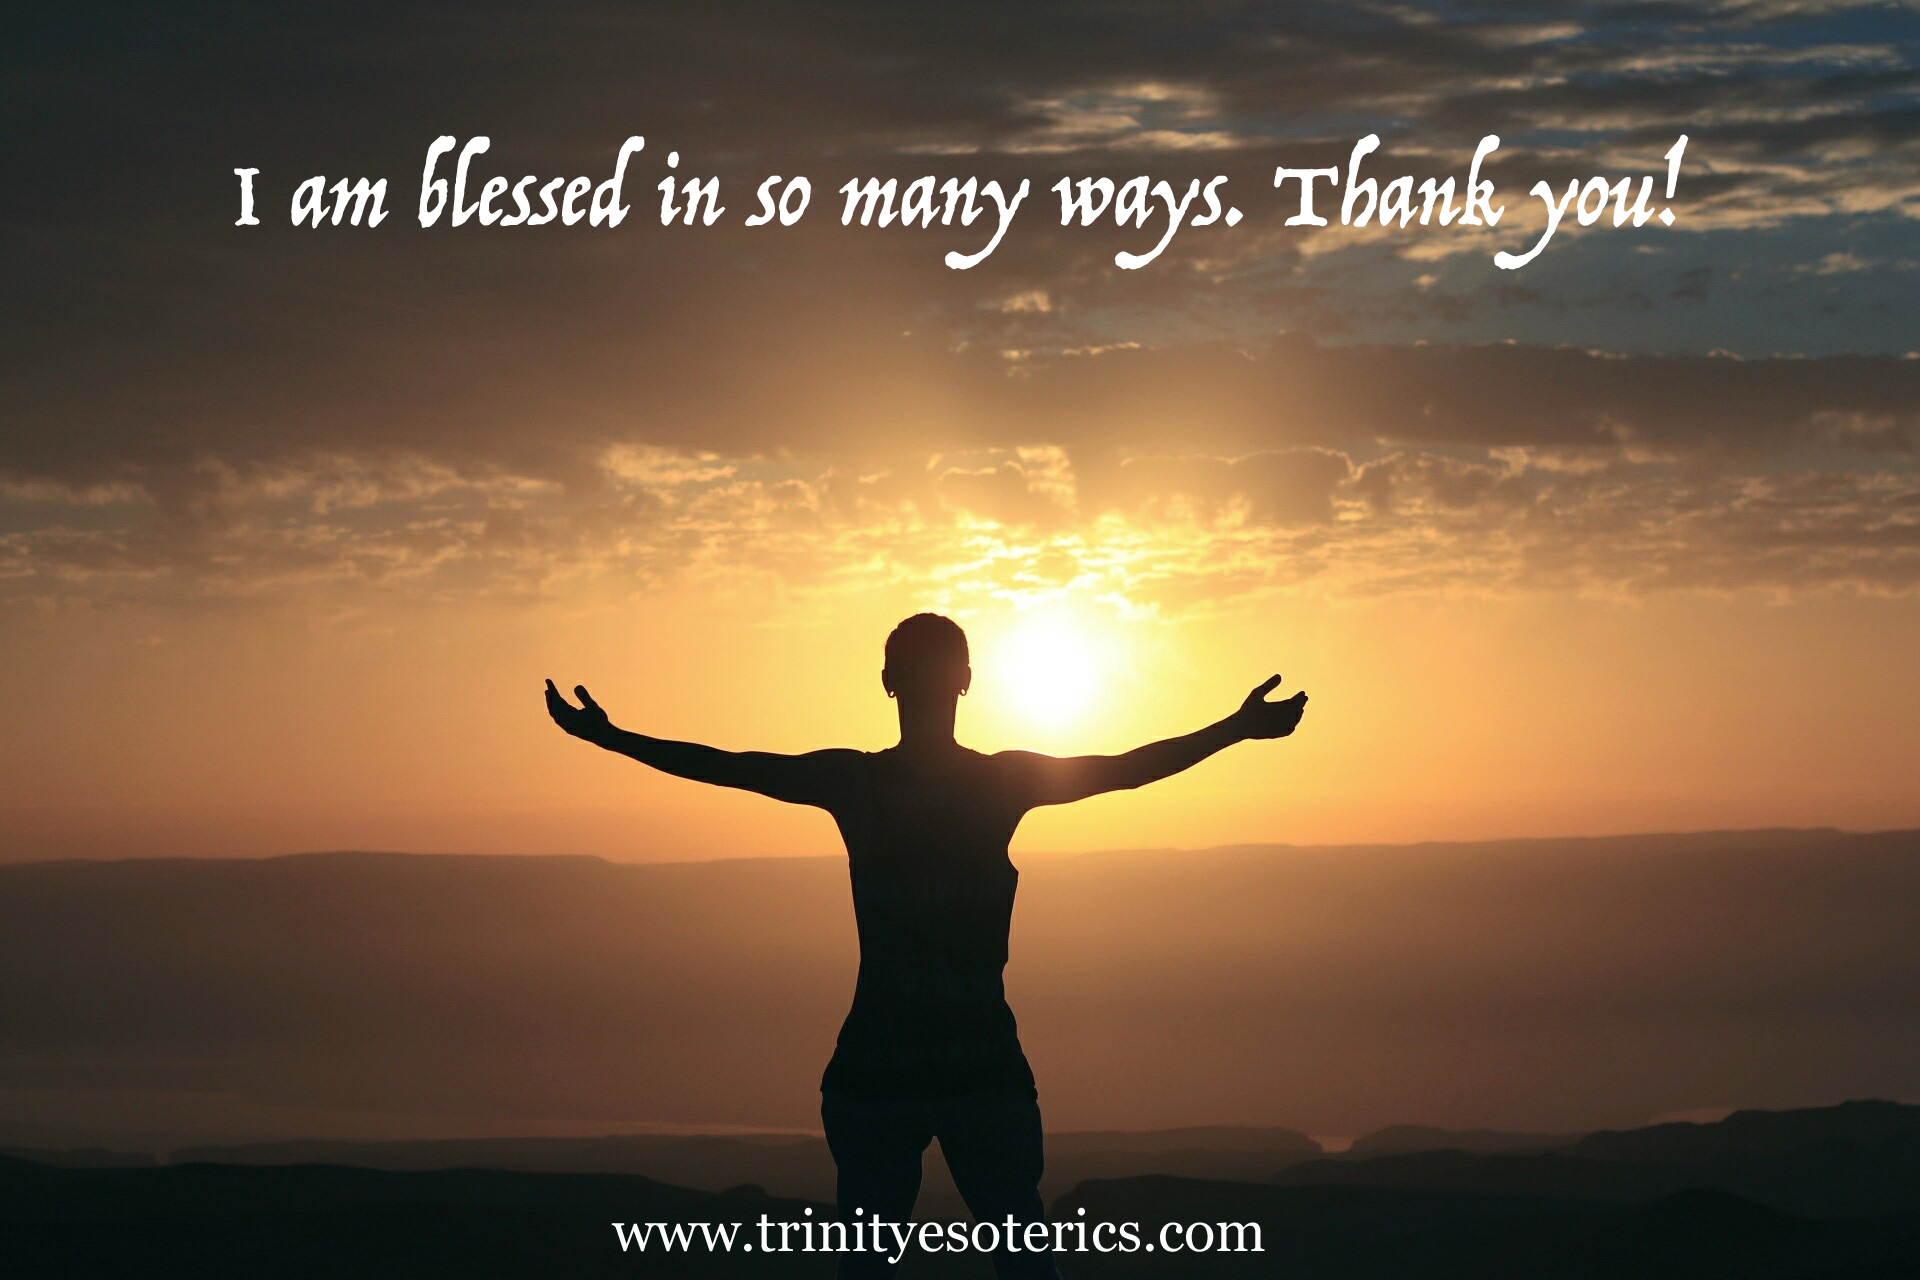 woman with outstretched arms greeting the day trinity esoterics